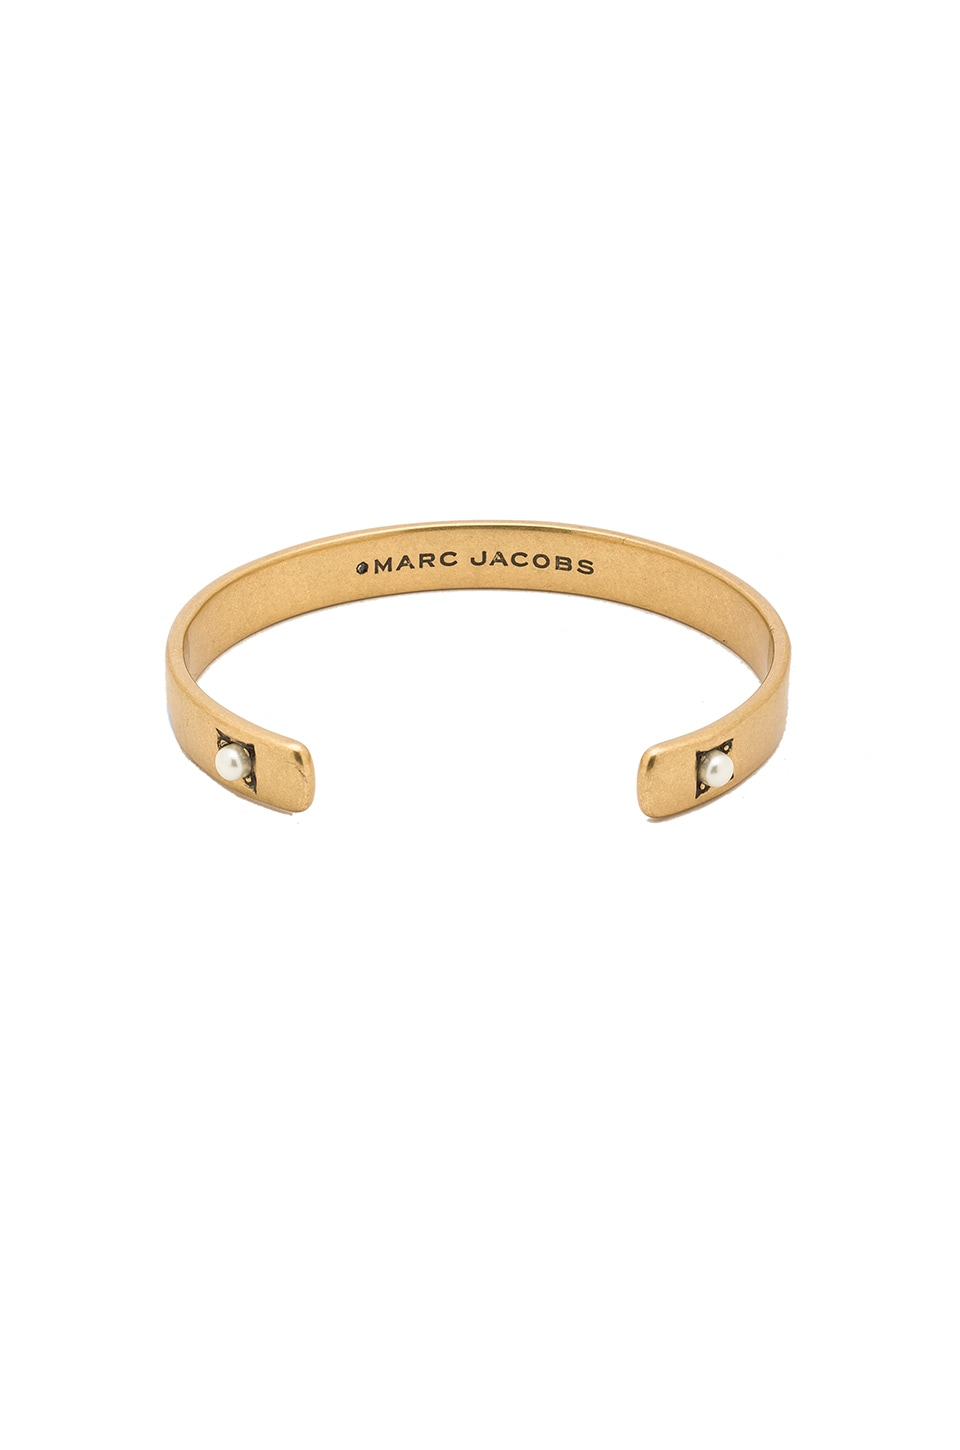 Marc Jacobs Dotted Pearl Cuff in Cream & Antique Gold